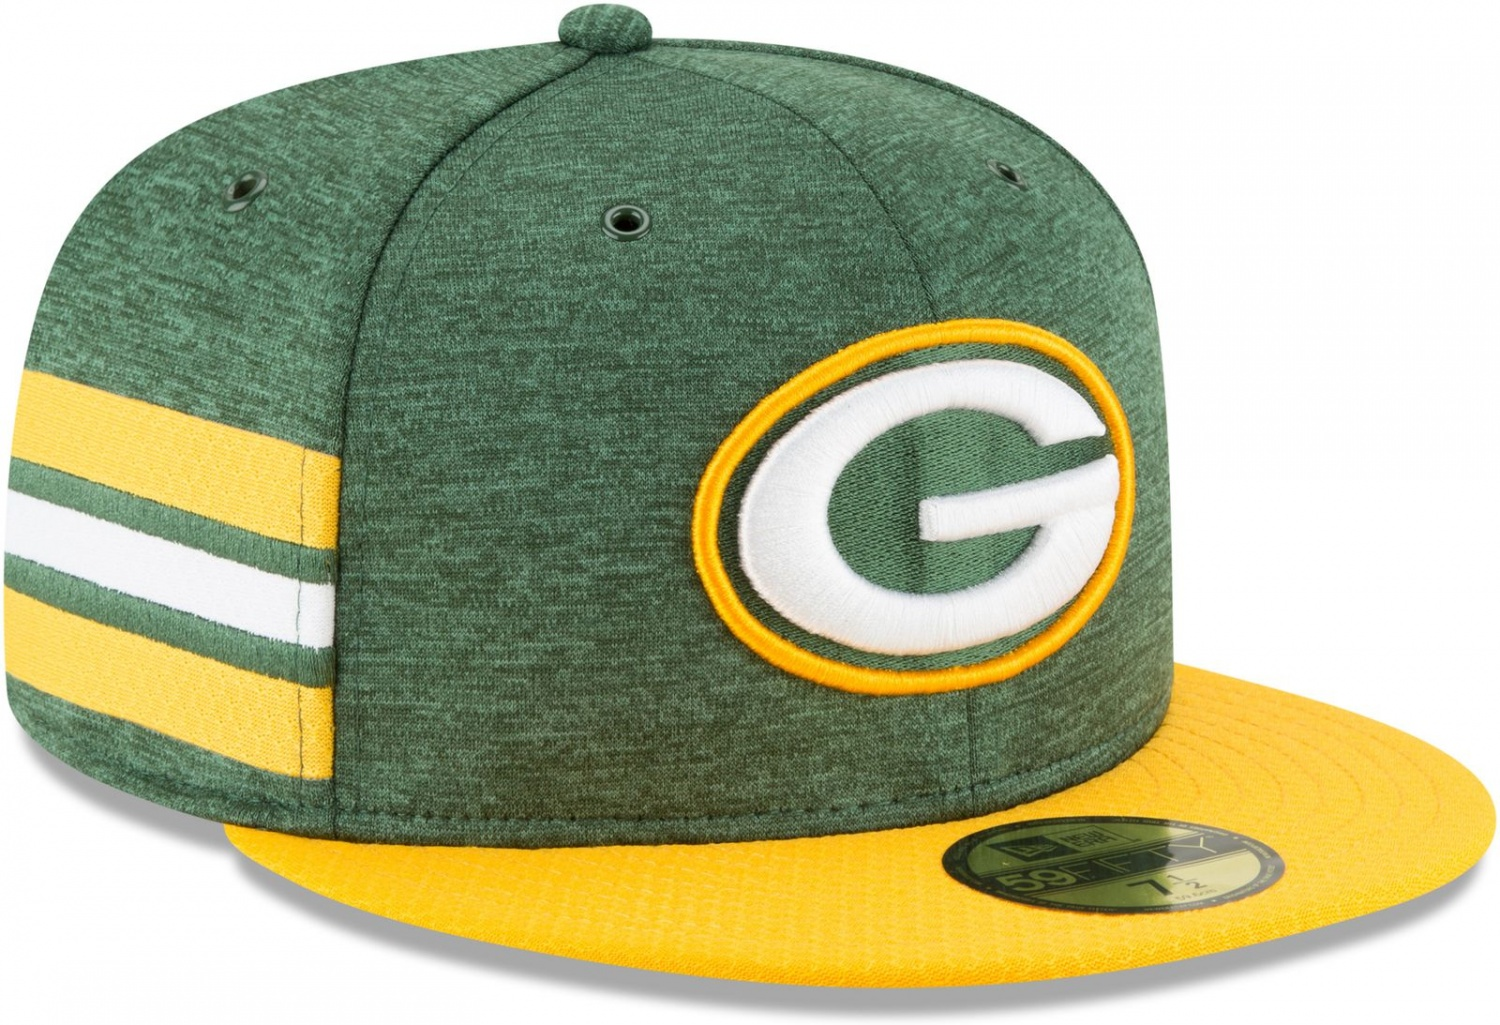 New Era Green Bay Packers Salute To Service Cap 59fifty Fitted Limited Edition